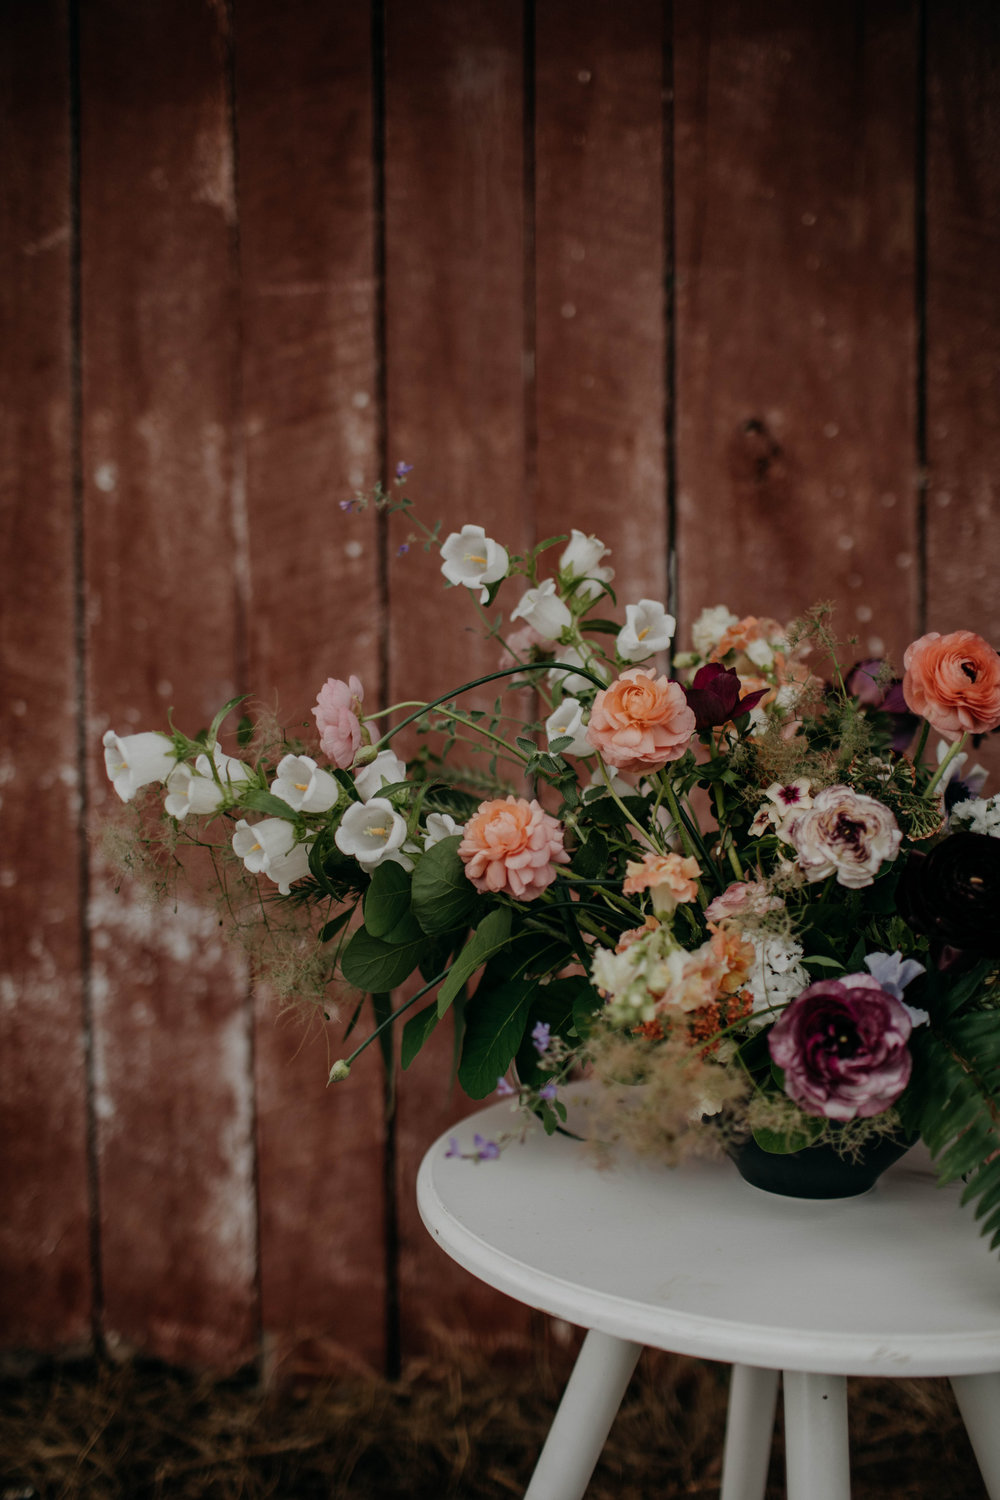 nashville floral workshop nashville tennessee wedding photographer84.jpg